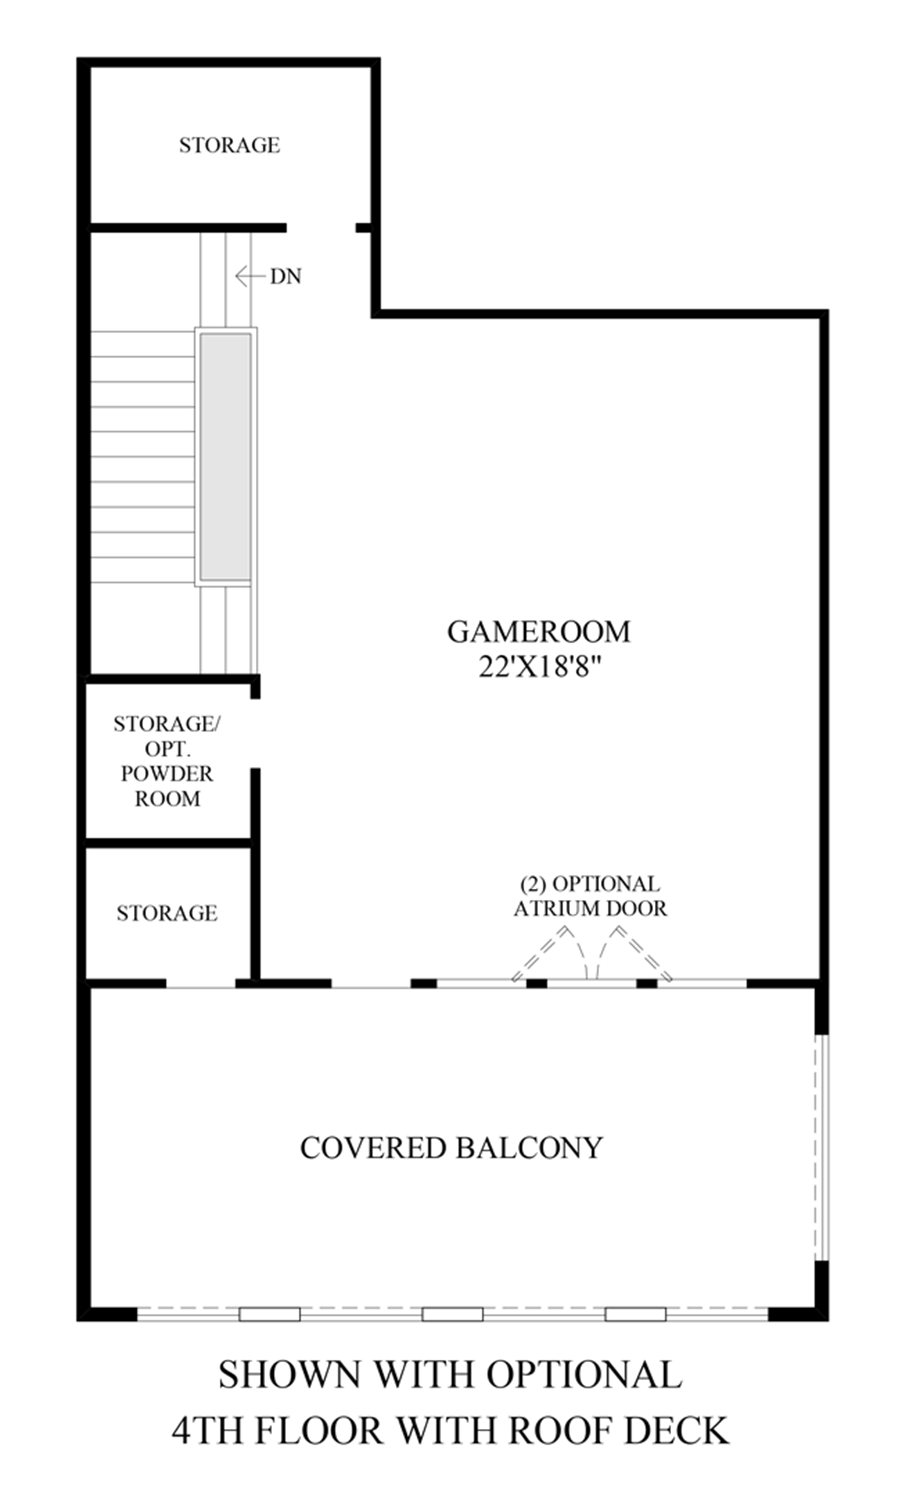 Optional 4th Floor with Roof Deck Floor Plan